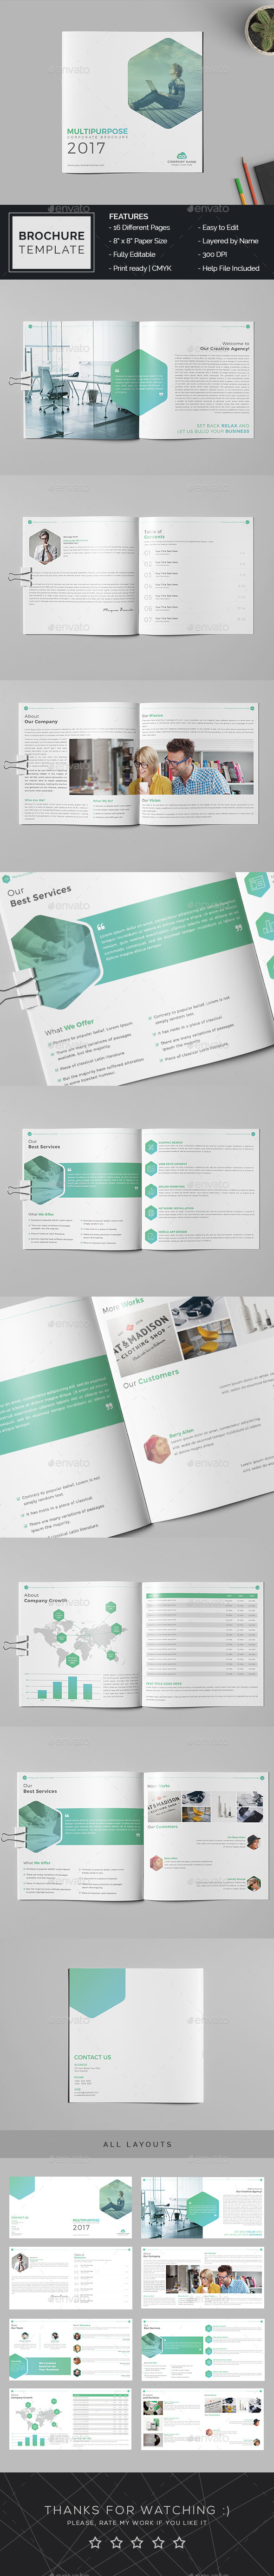 Company Profile Brochure Template By Mrremon Graphicriver